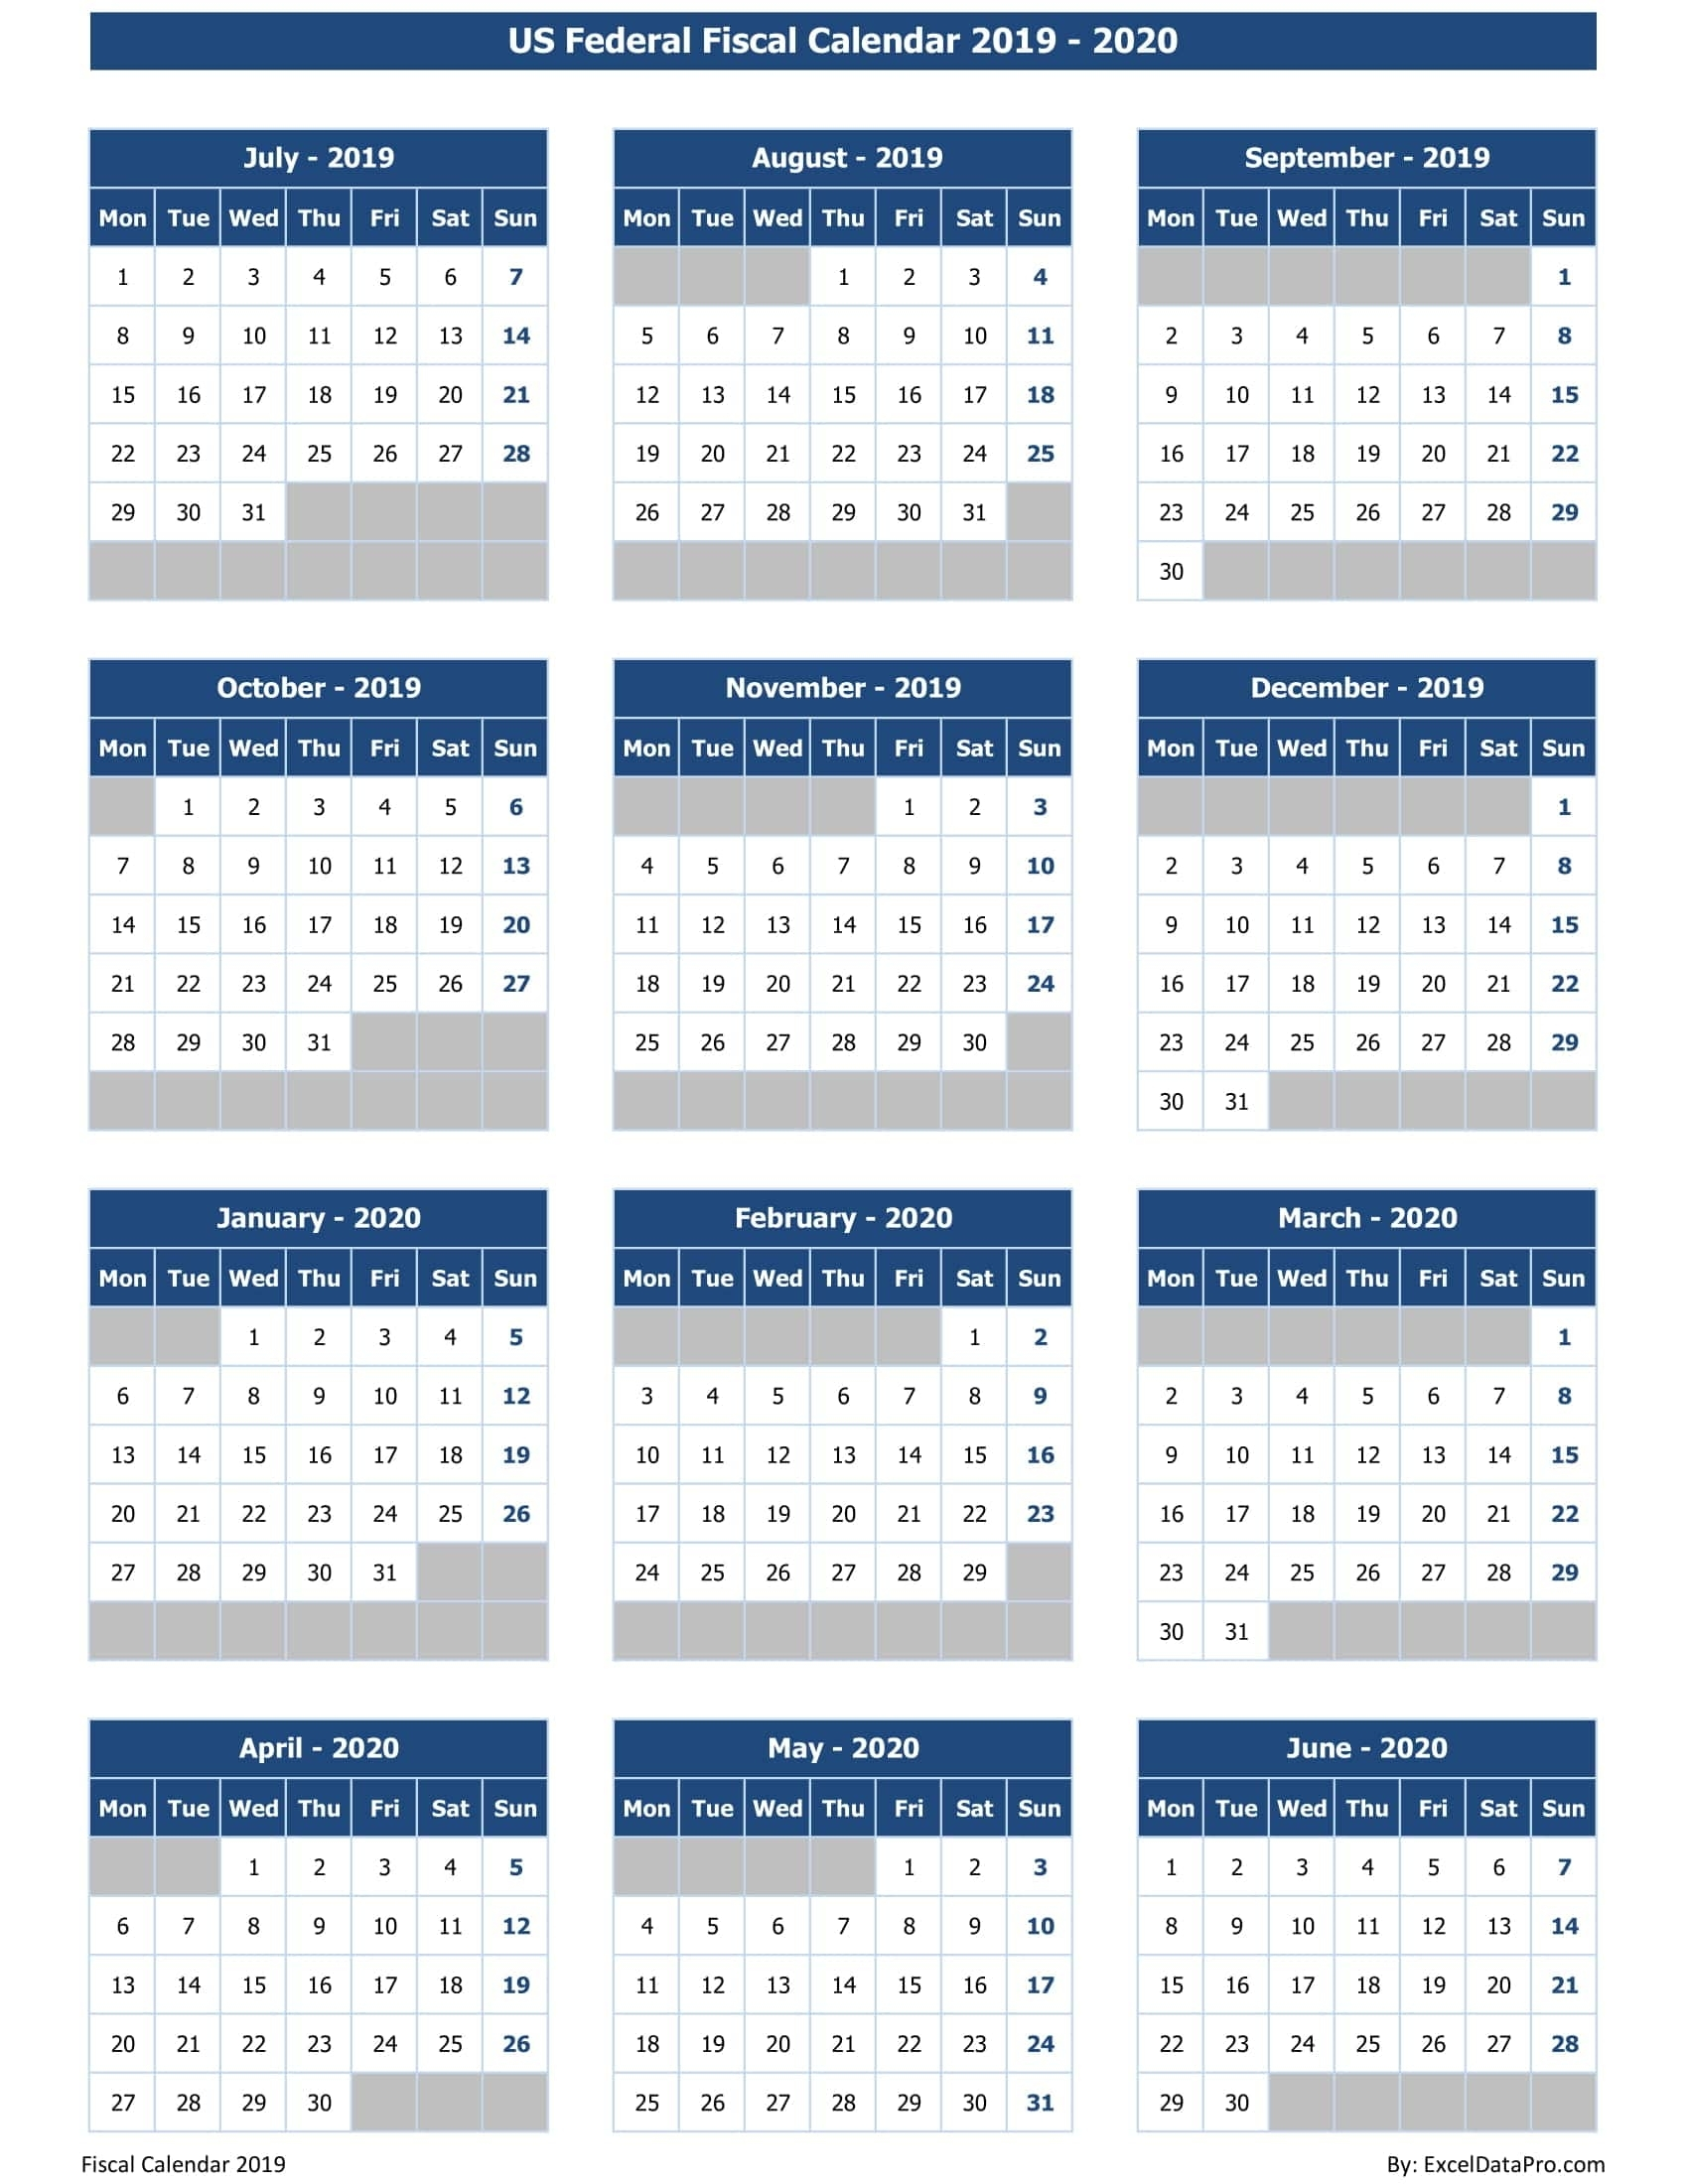 Download Us Federal Fiscal Calendar 2019-20 Excel Template